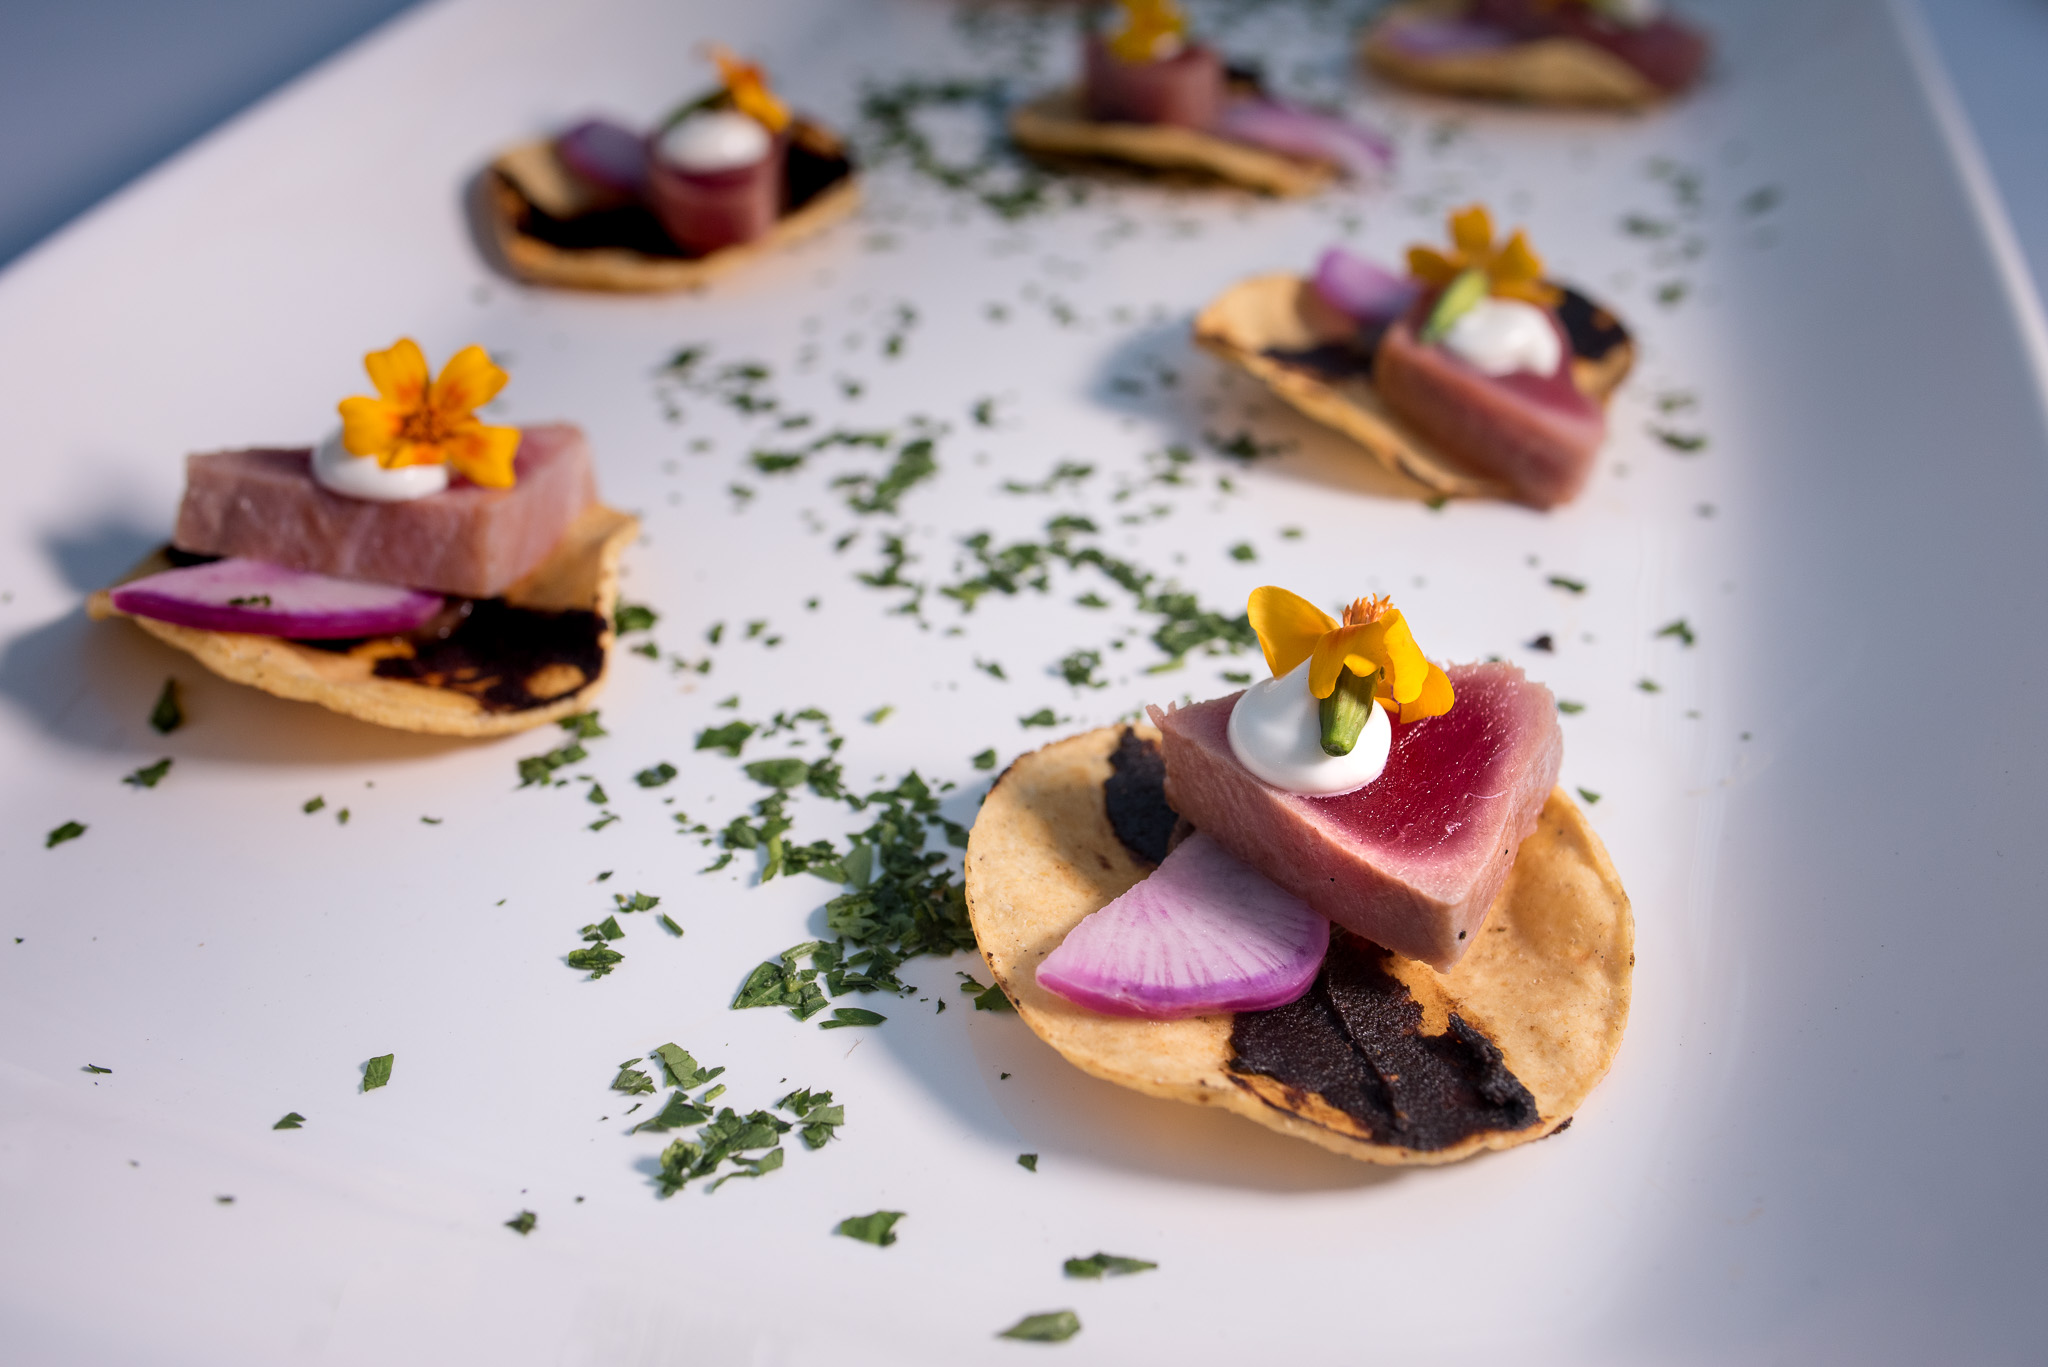 ALBACORE TOSTADA| Seared Albacore, Black Bean, Crema & Microflower, on Tostadita